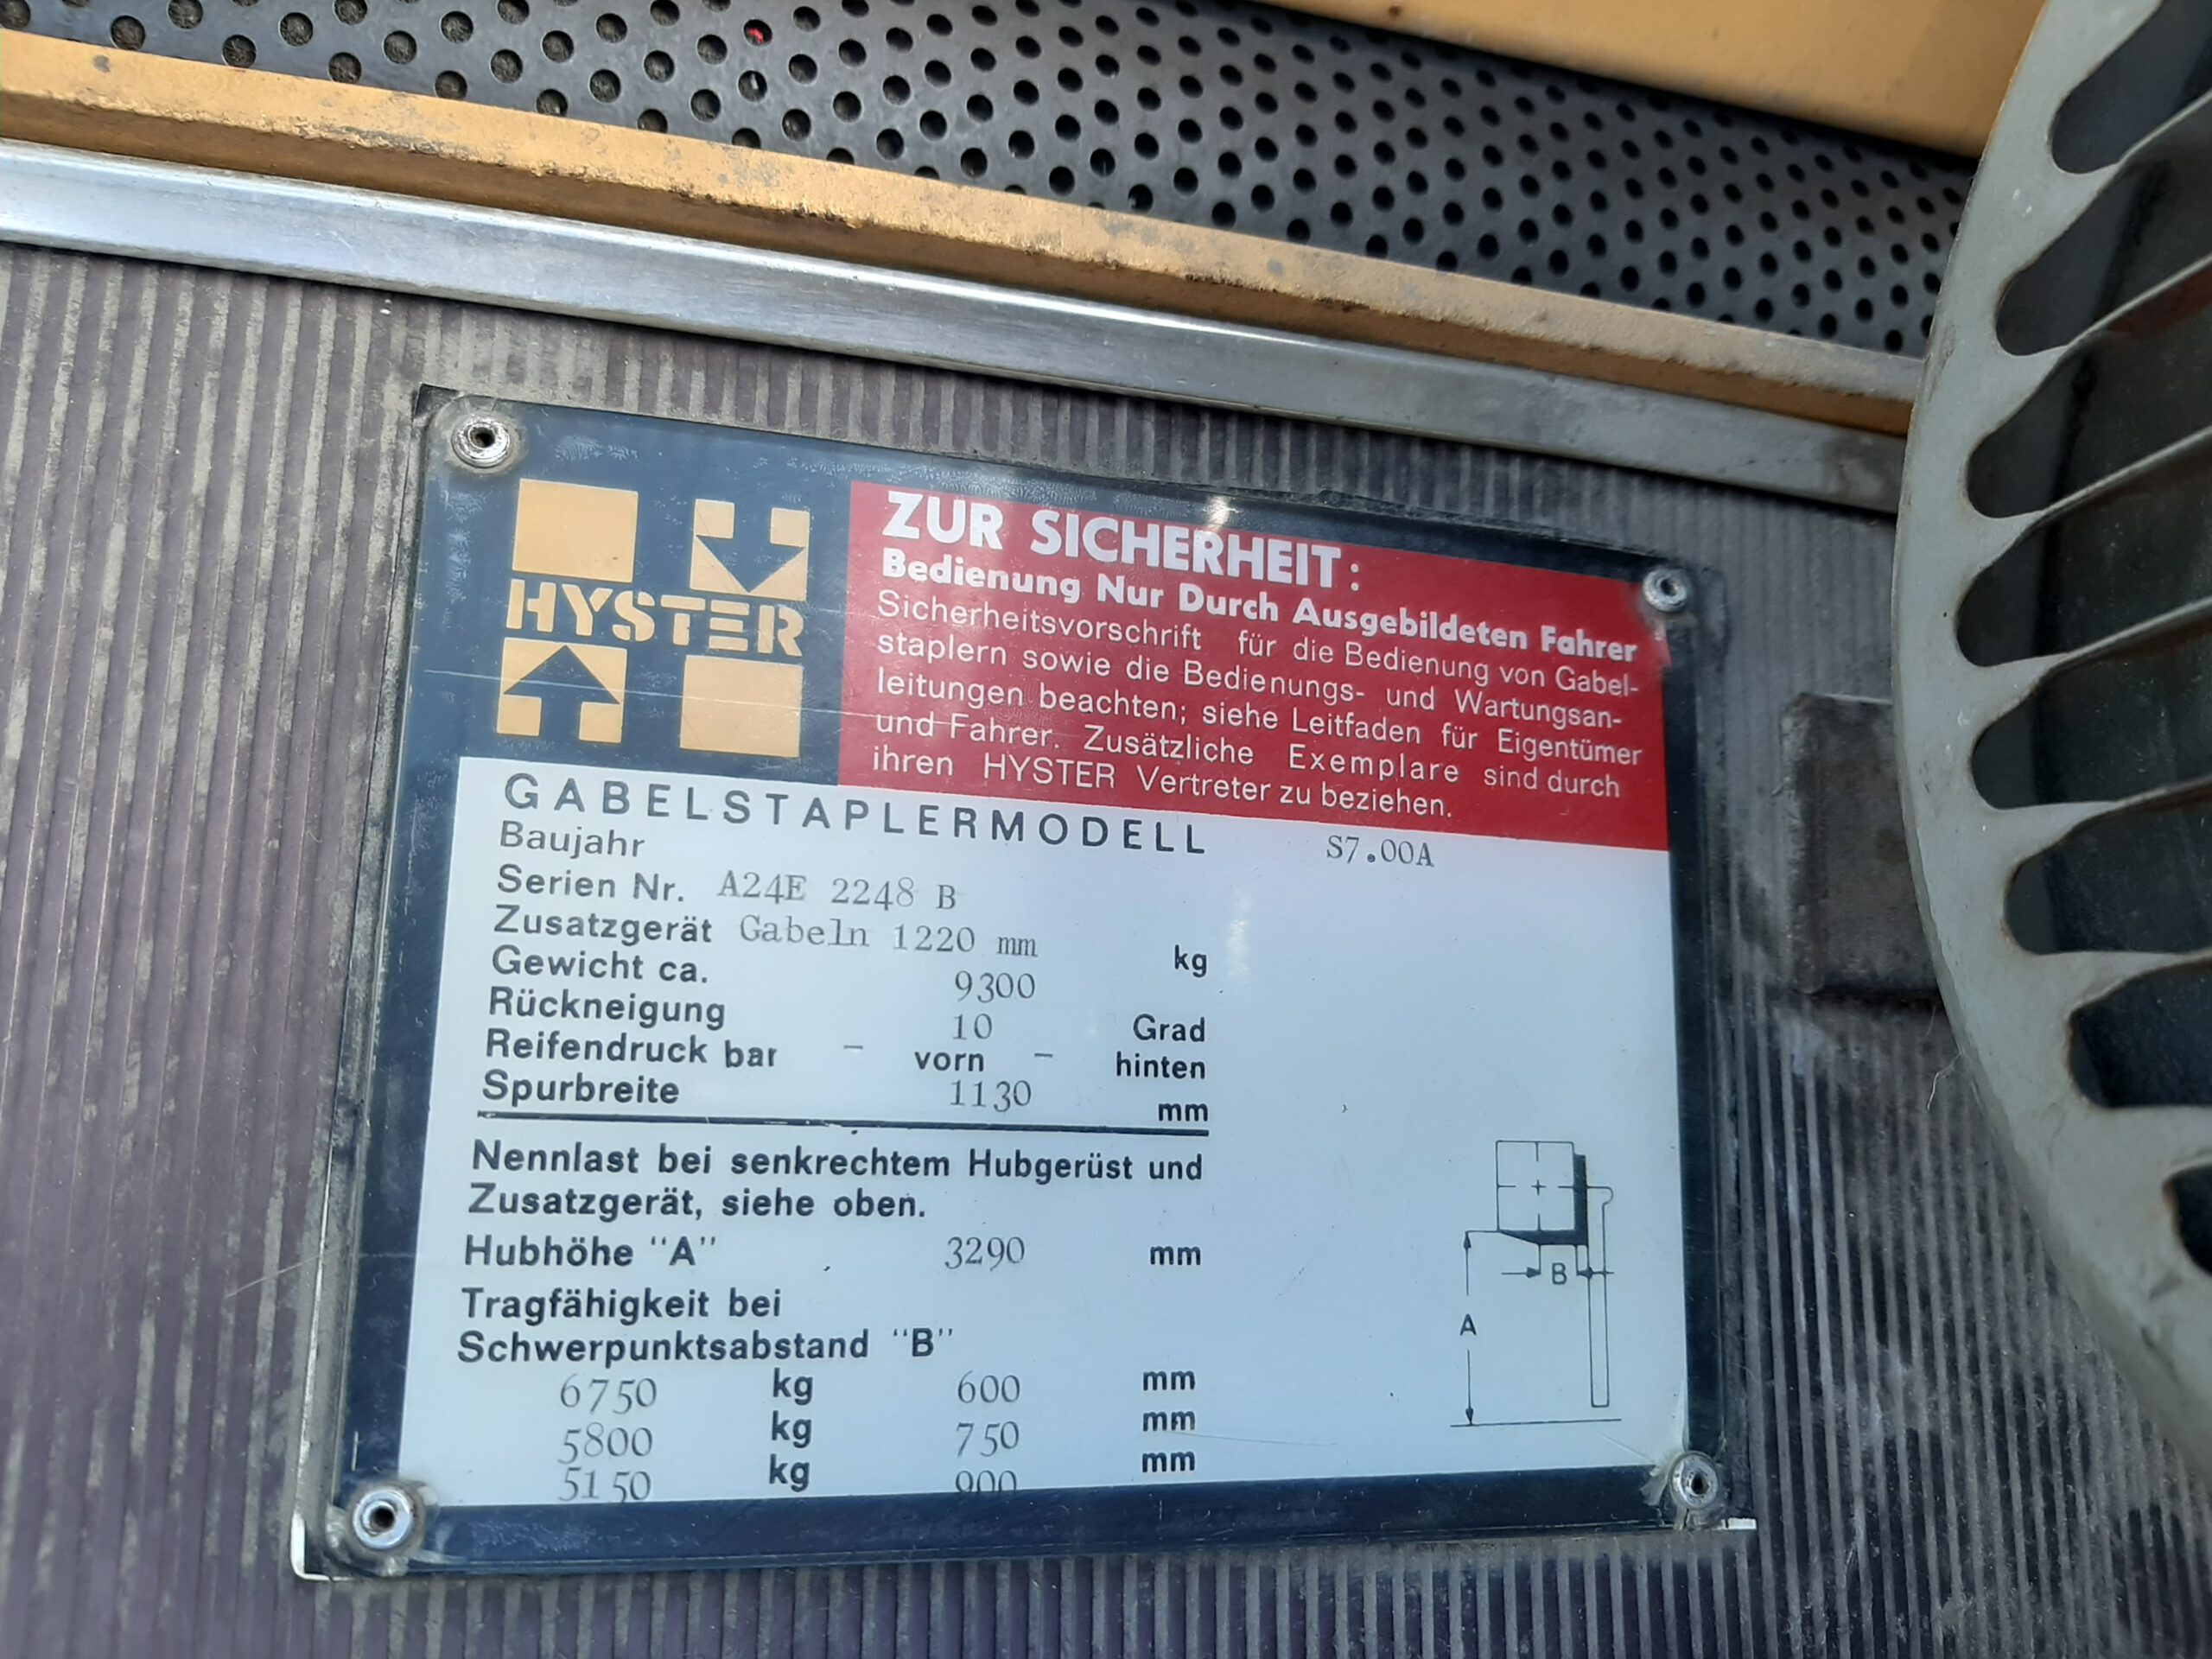 Hyster S7.00A Compacte 7 Tonner, Gas. full